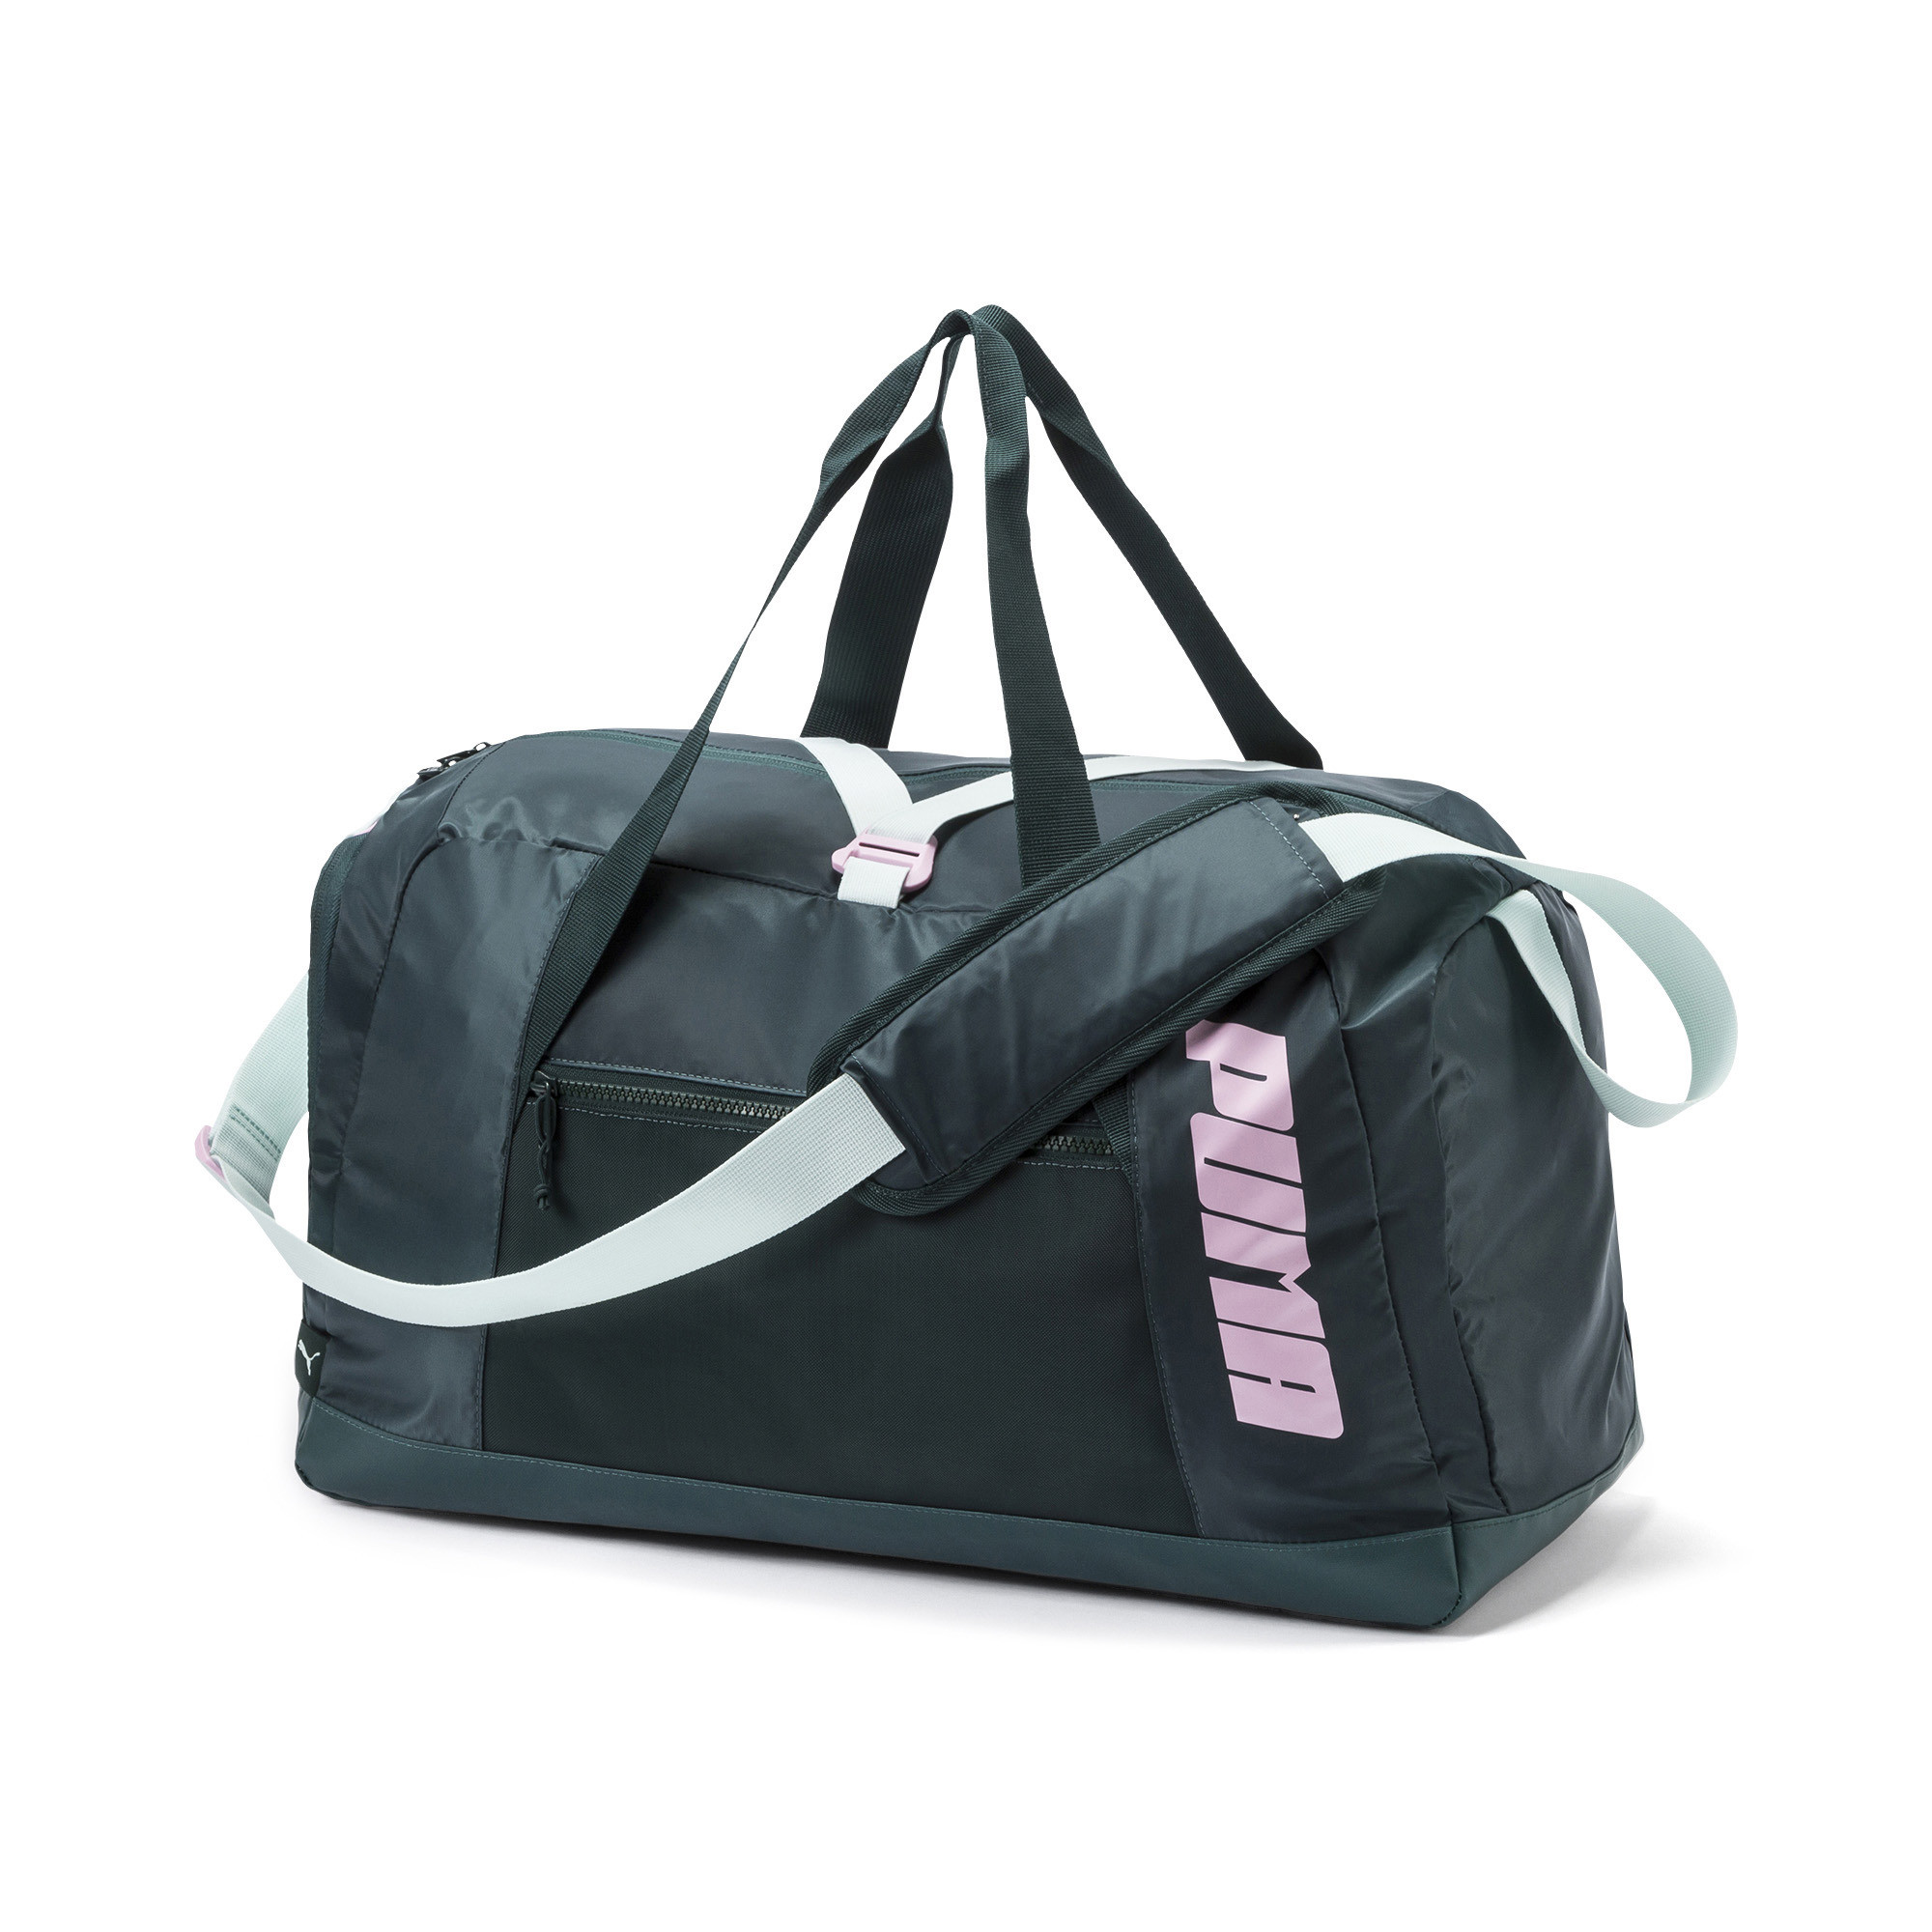 ad09702d23d Backpacks & Bags - Accessories - Womens